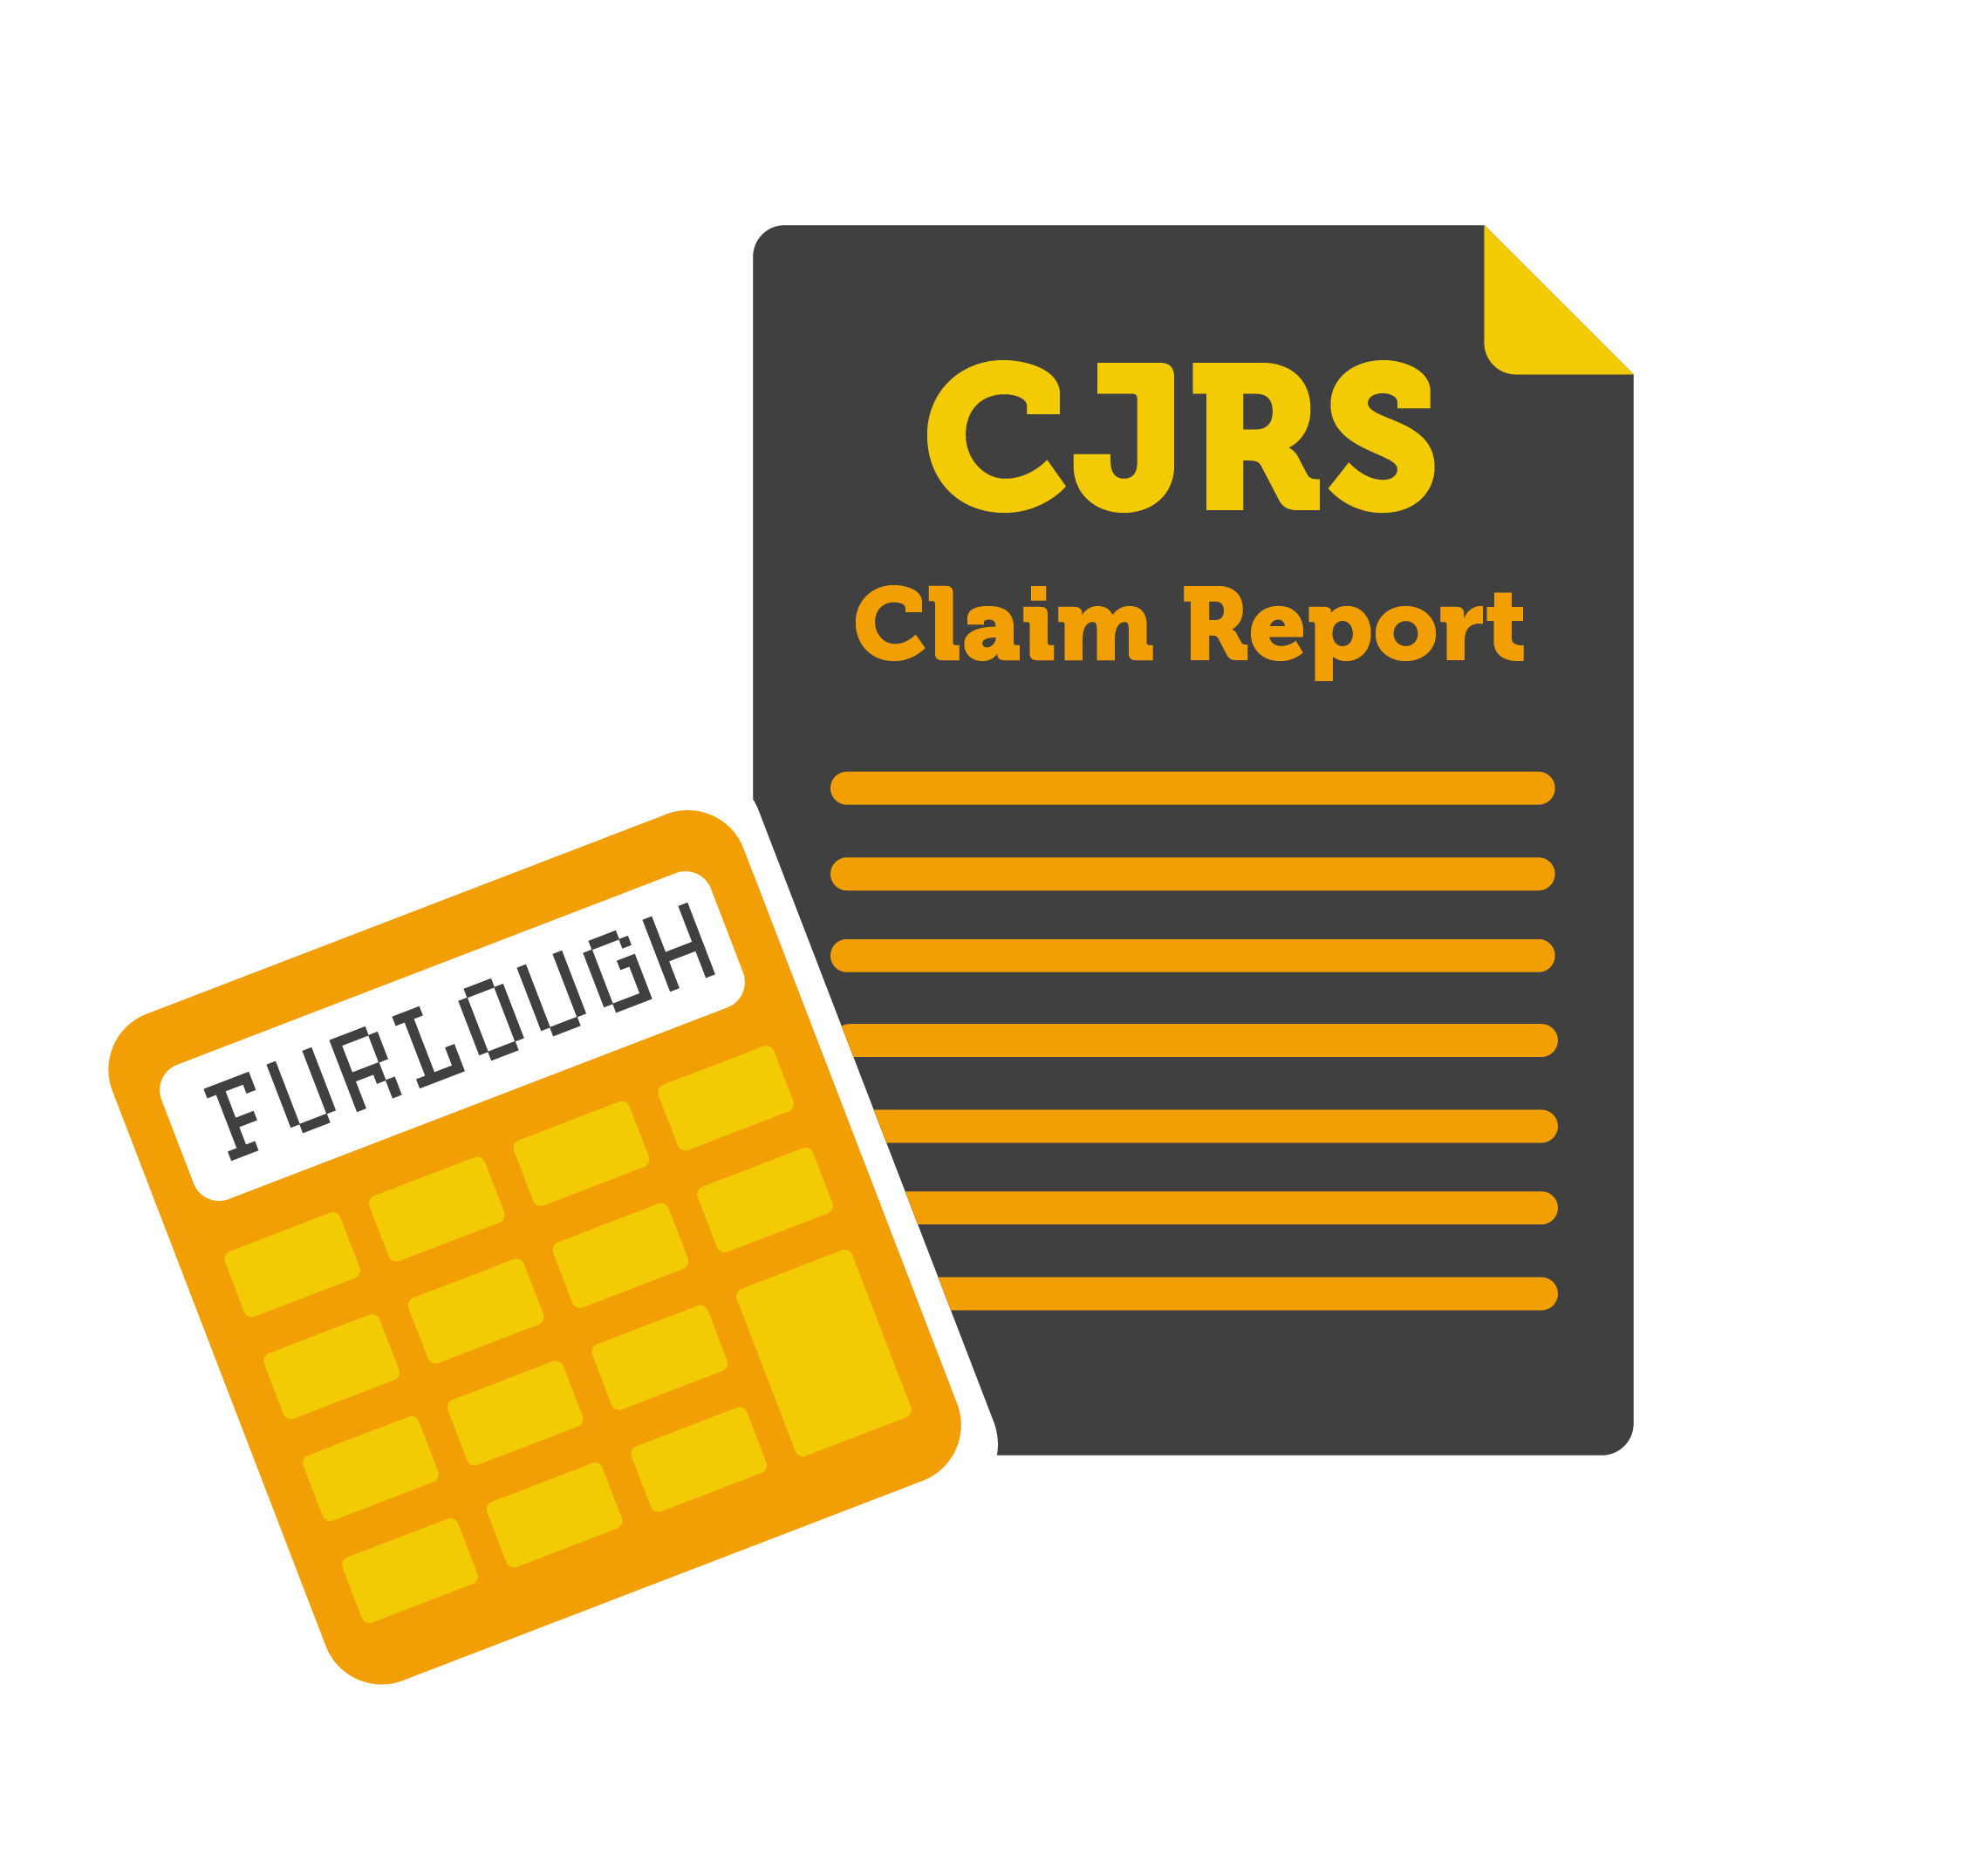 Furlough Calculator